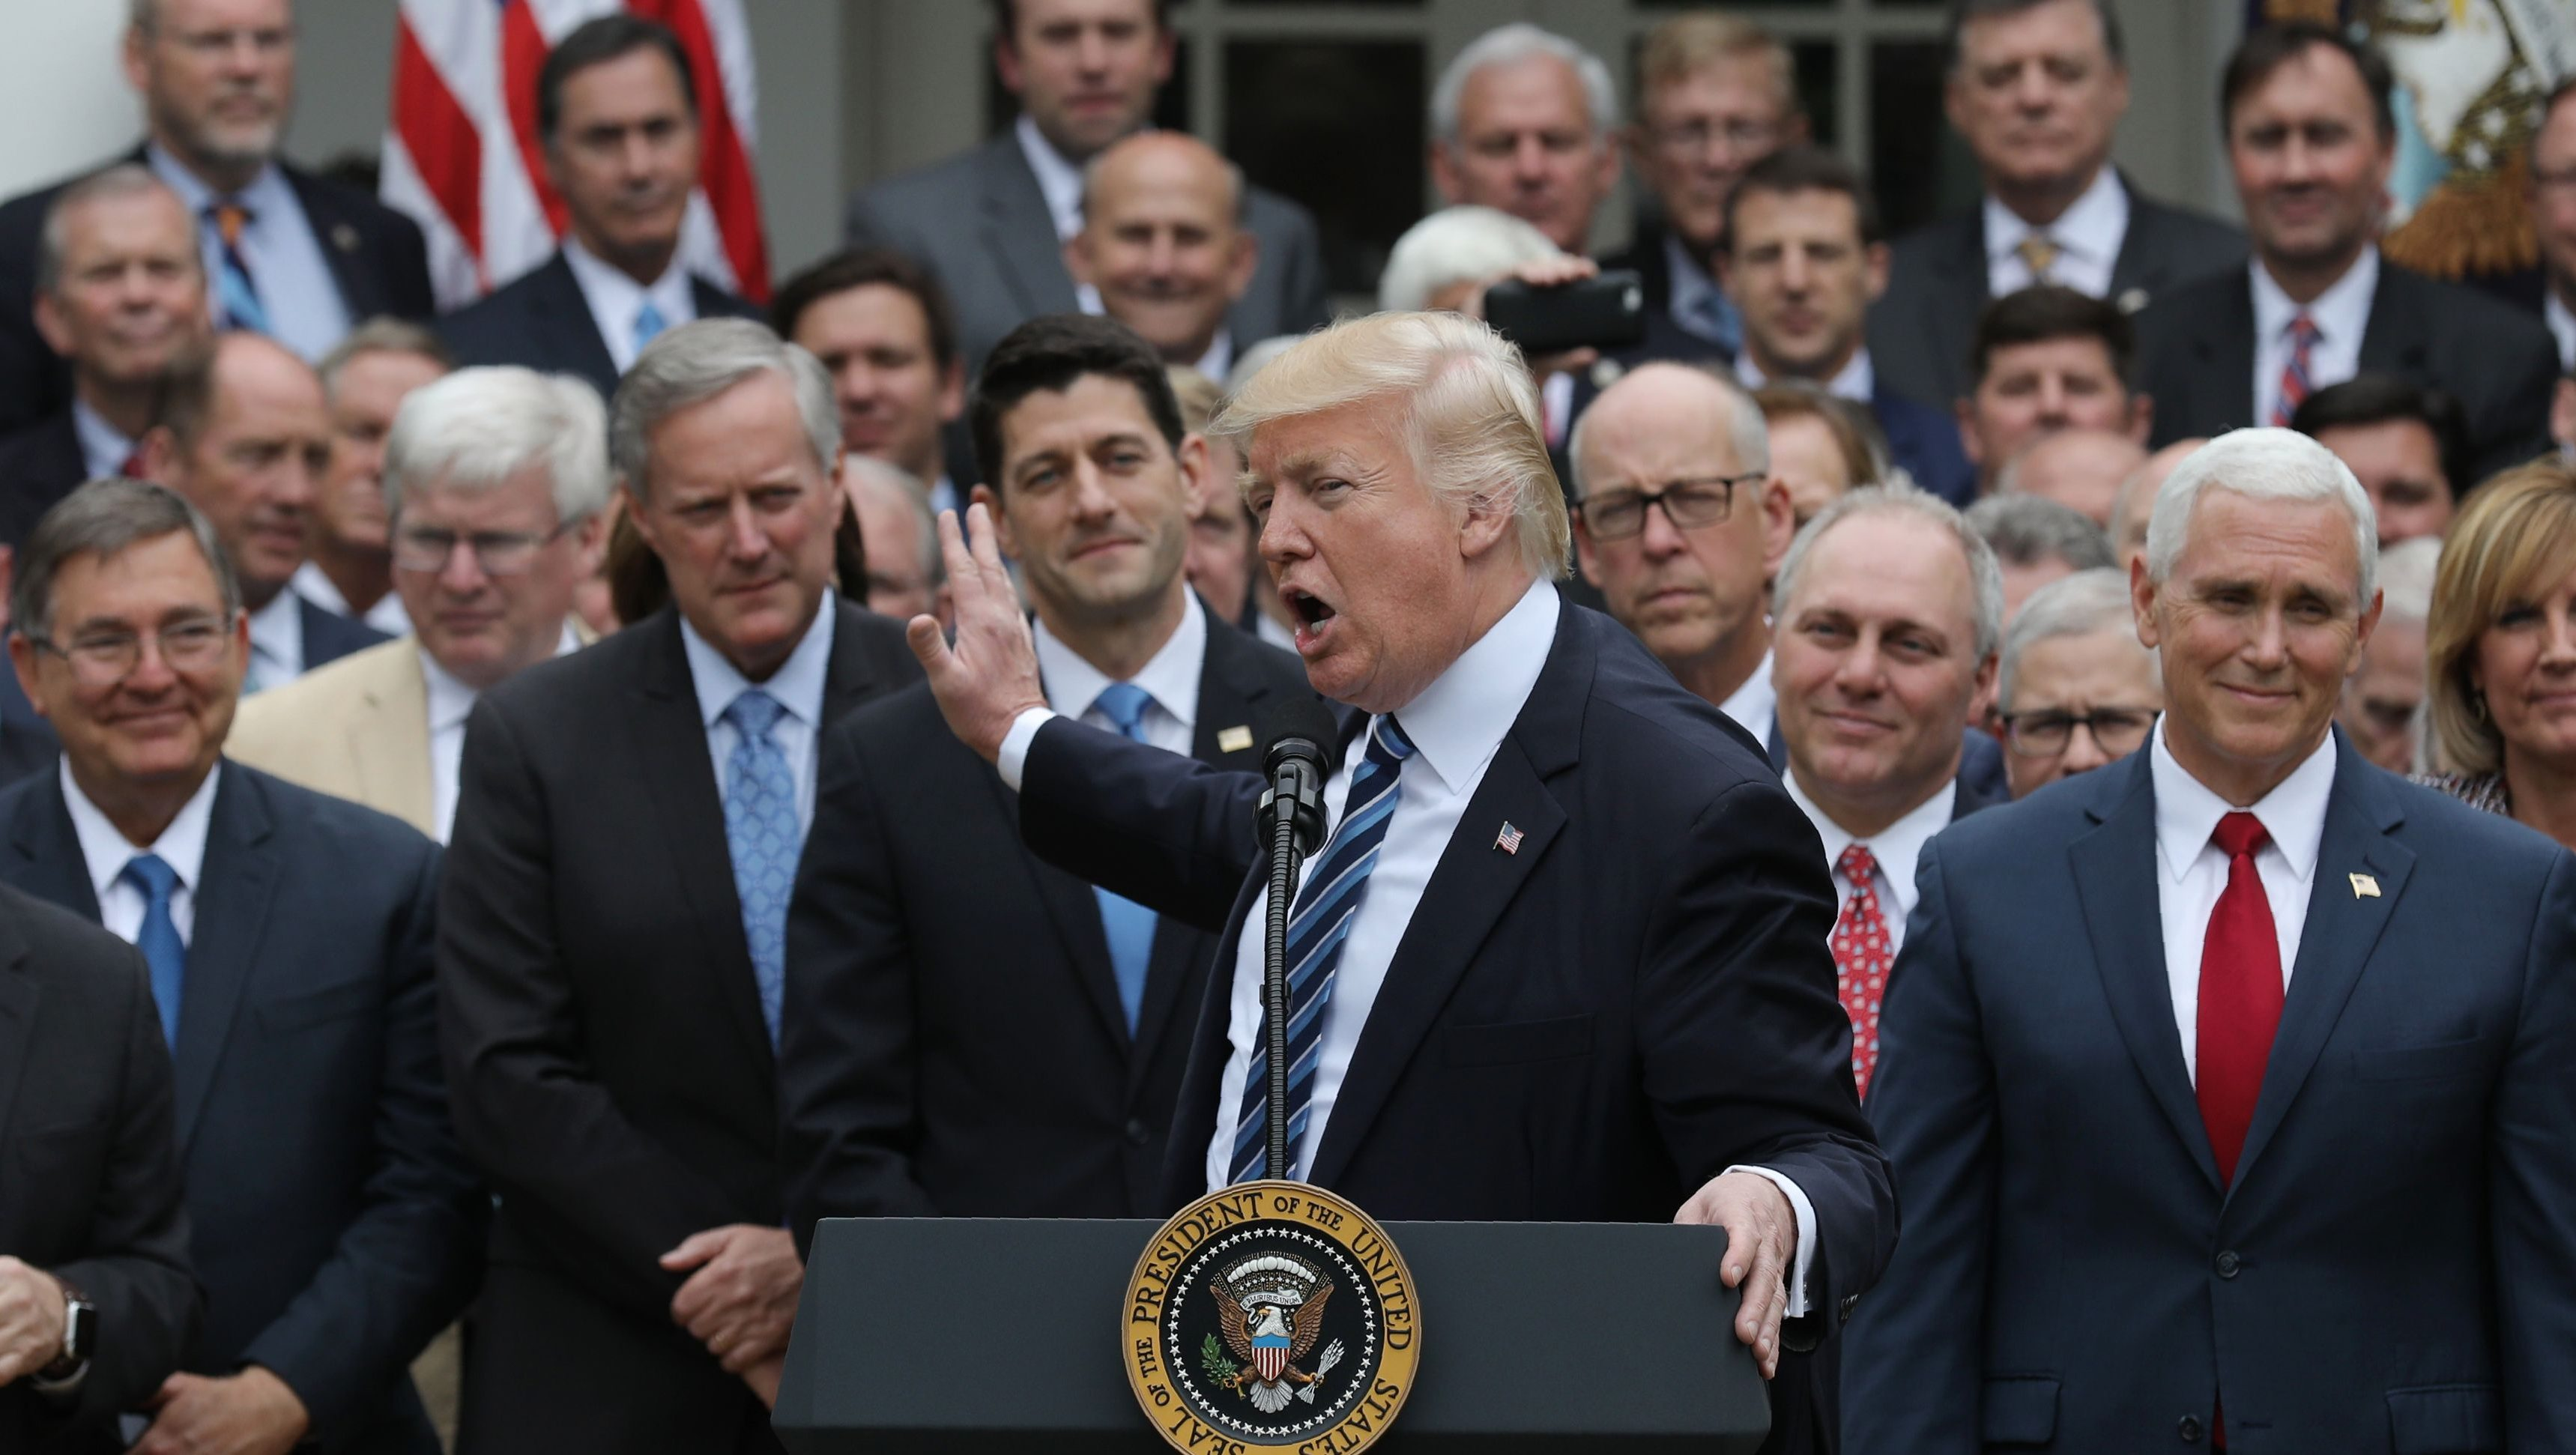 U.S. President Donald Trump (C) acknowledges House Freedom Caucus leader Rep. Mark Meadows (R-NC) (3rdL) as he gathers with Congressional Republicans in the Rose Garden of the White House after the House of Representatives approved the American Healthcare Act, to repeal major parts of Obamacare and replace it with the Republican healthcare plan, in Washington, U.S., May 4, 2017. REUTERS/Carlos Barria - HP1ED541IYN0S